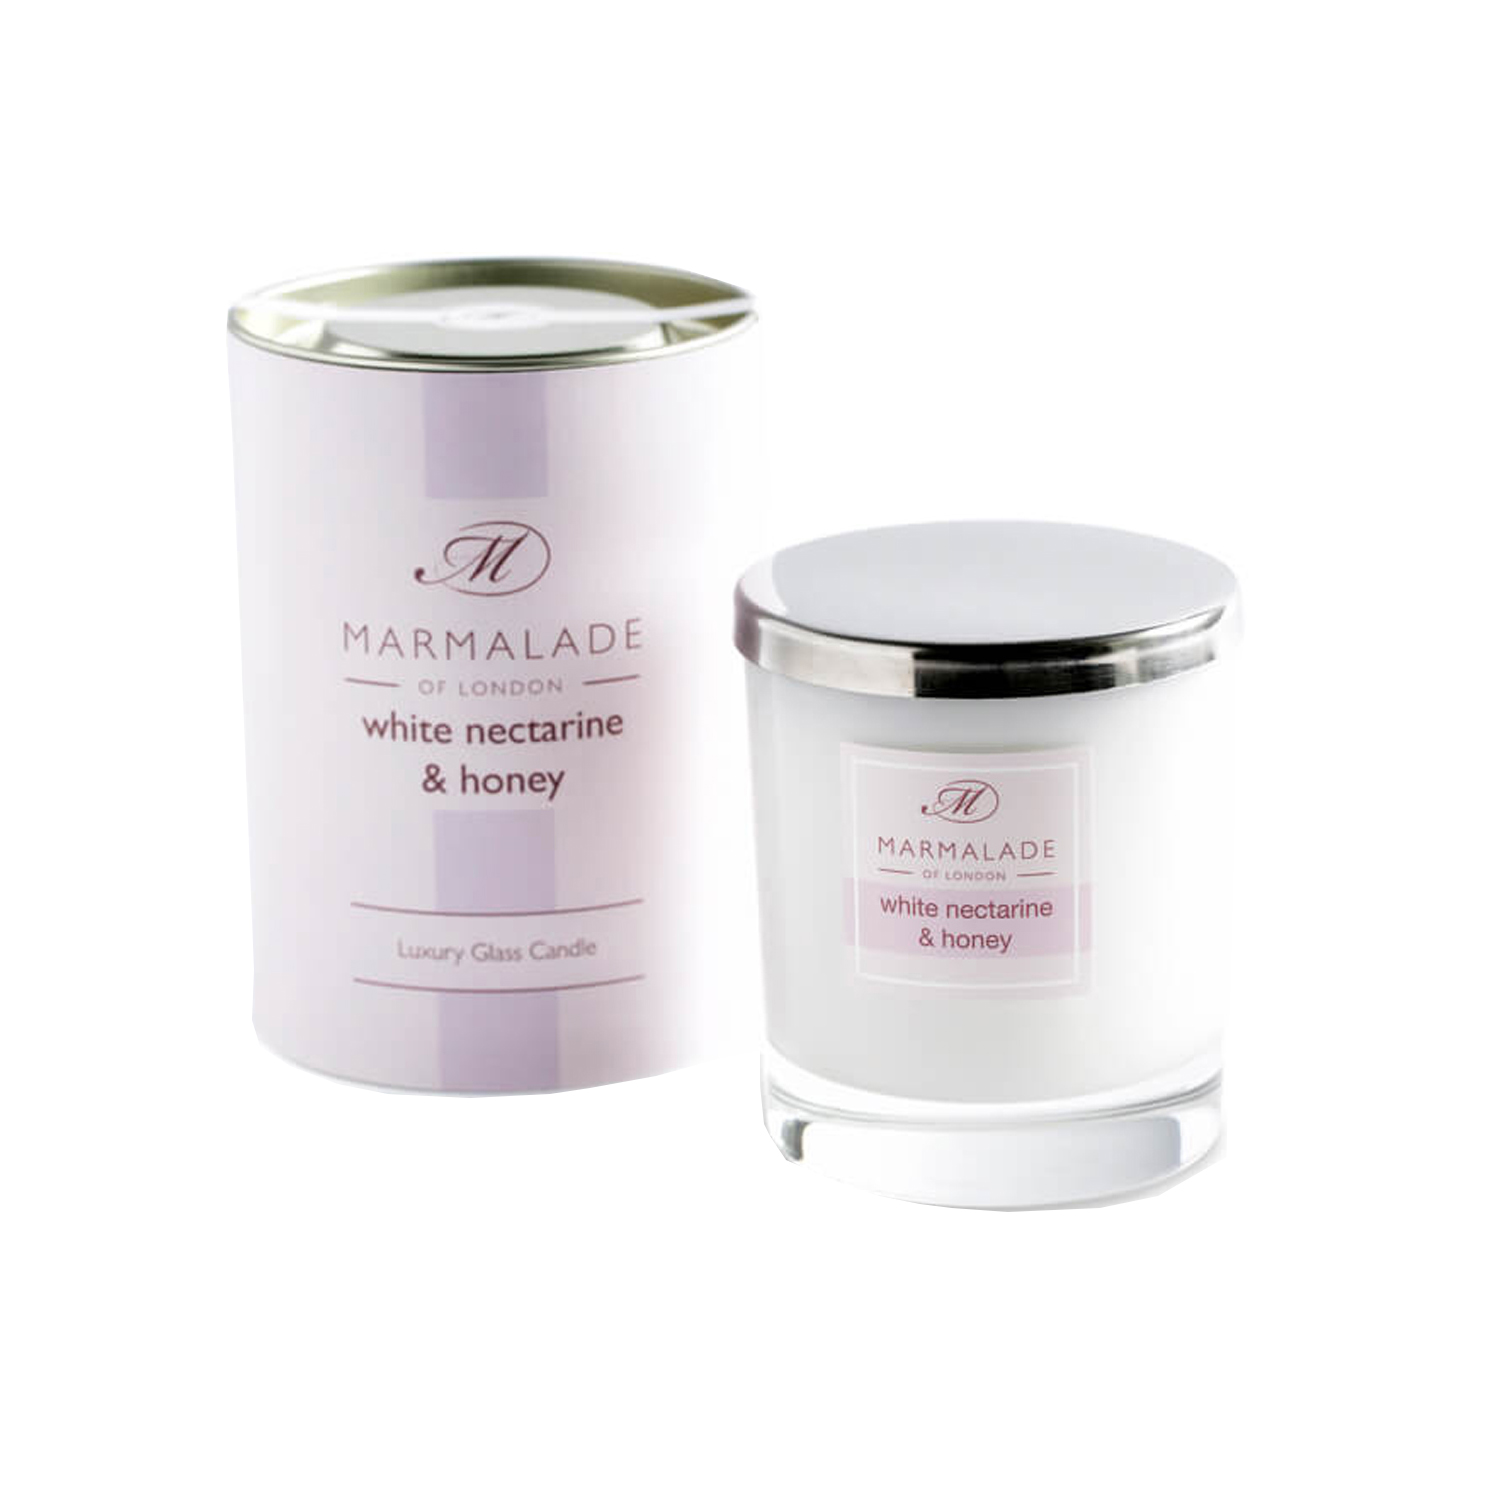 00174 White nectarine and honey glass candle